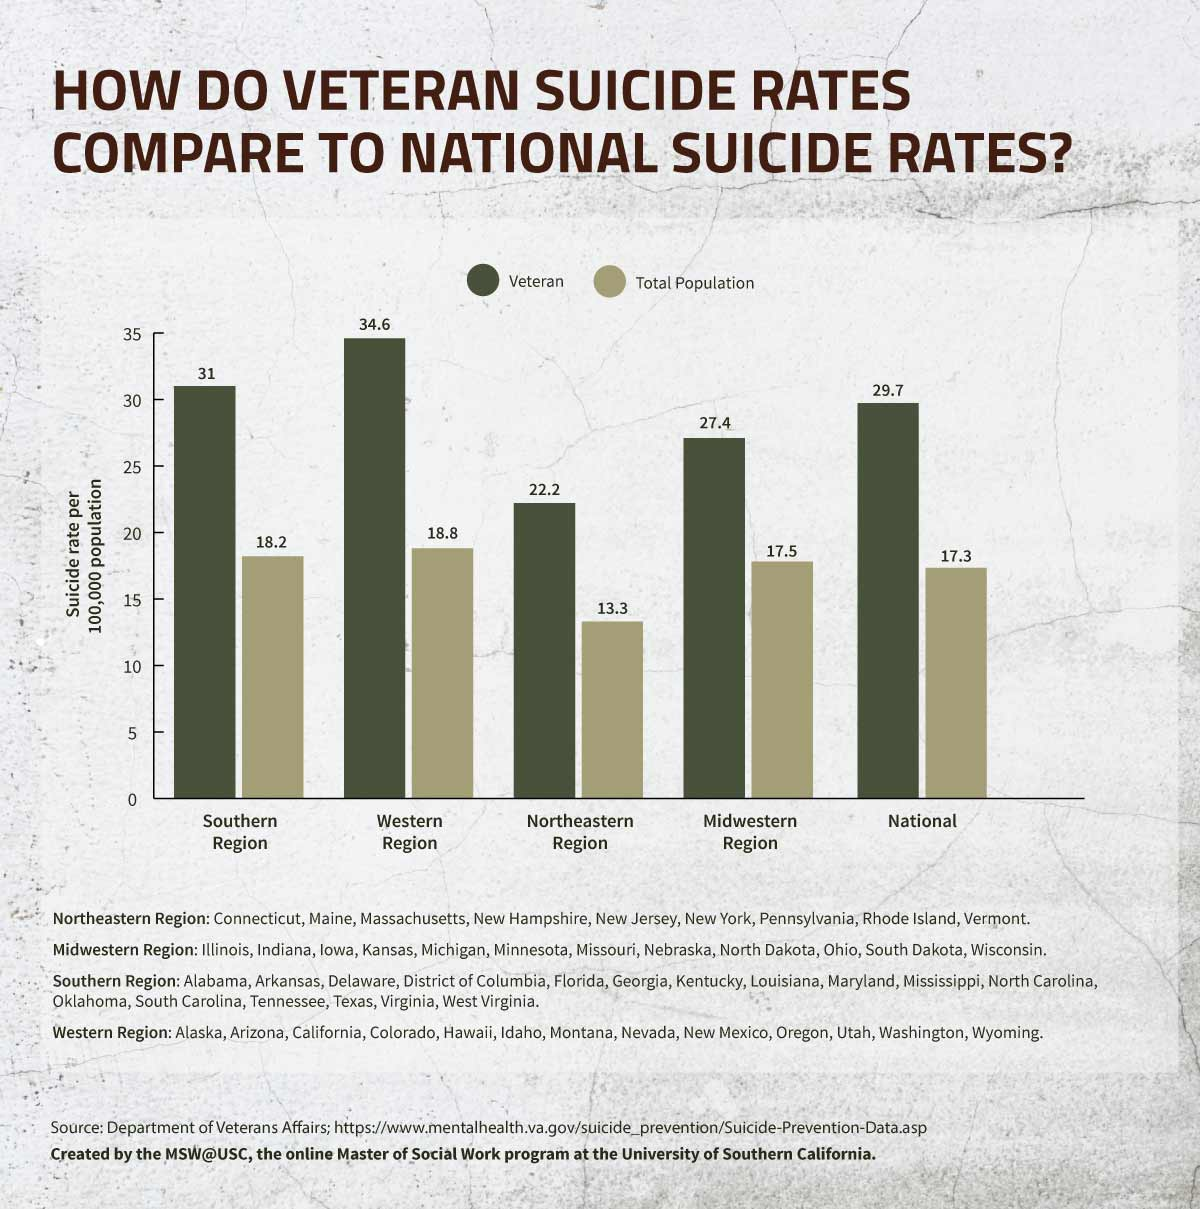 How Do Veteran Suicide Rates Compare to Nation Suicide Rates infographic.